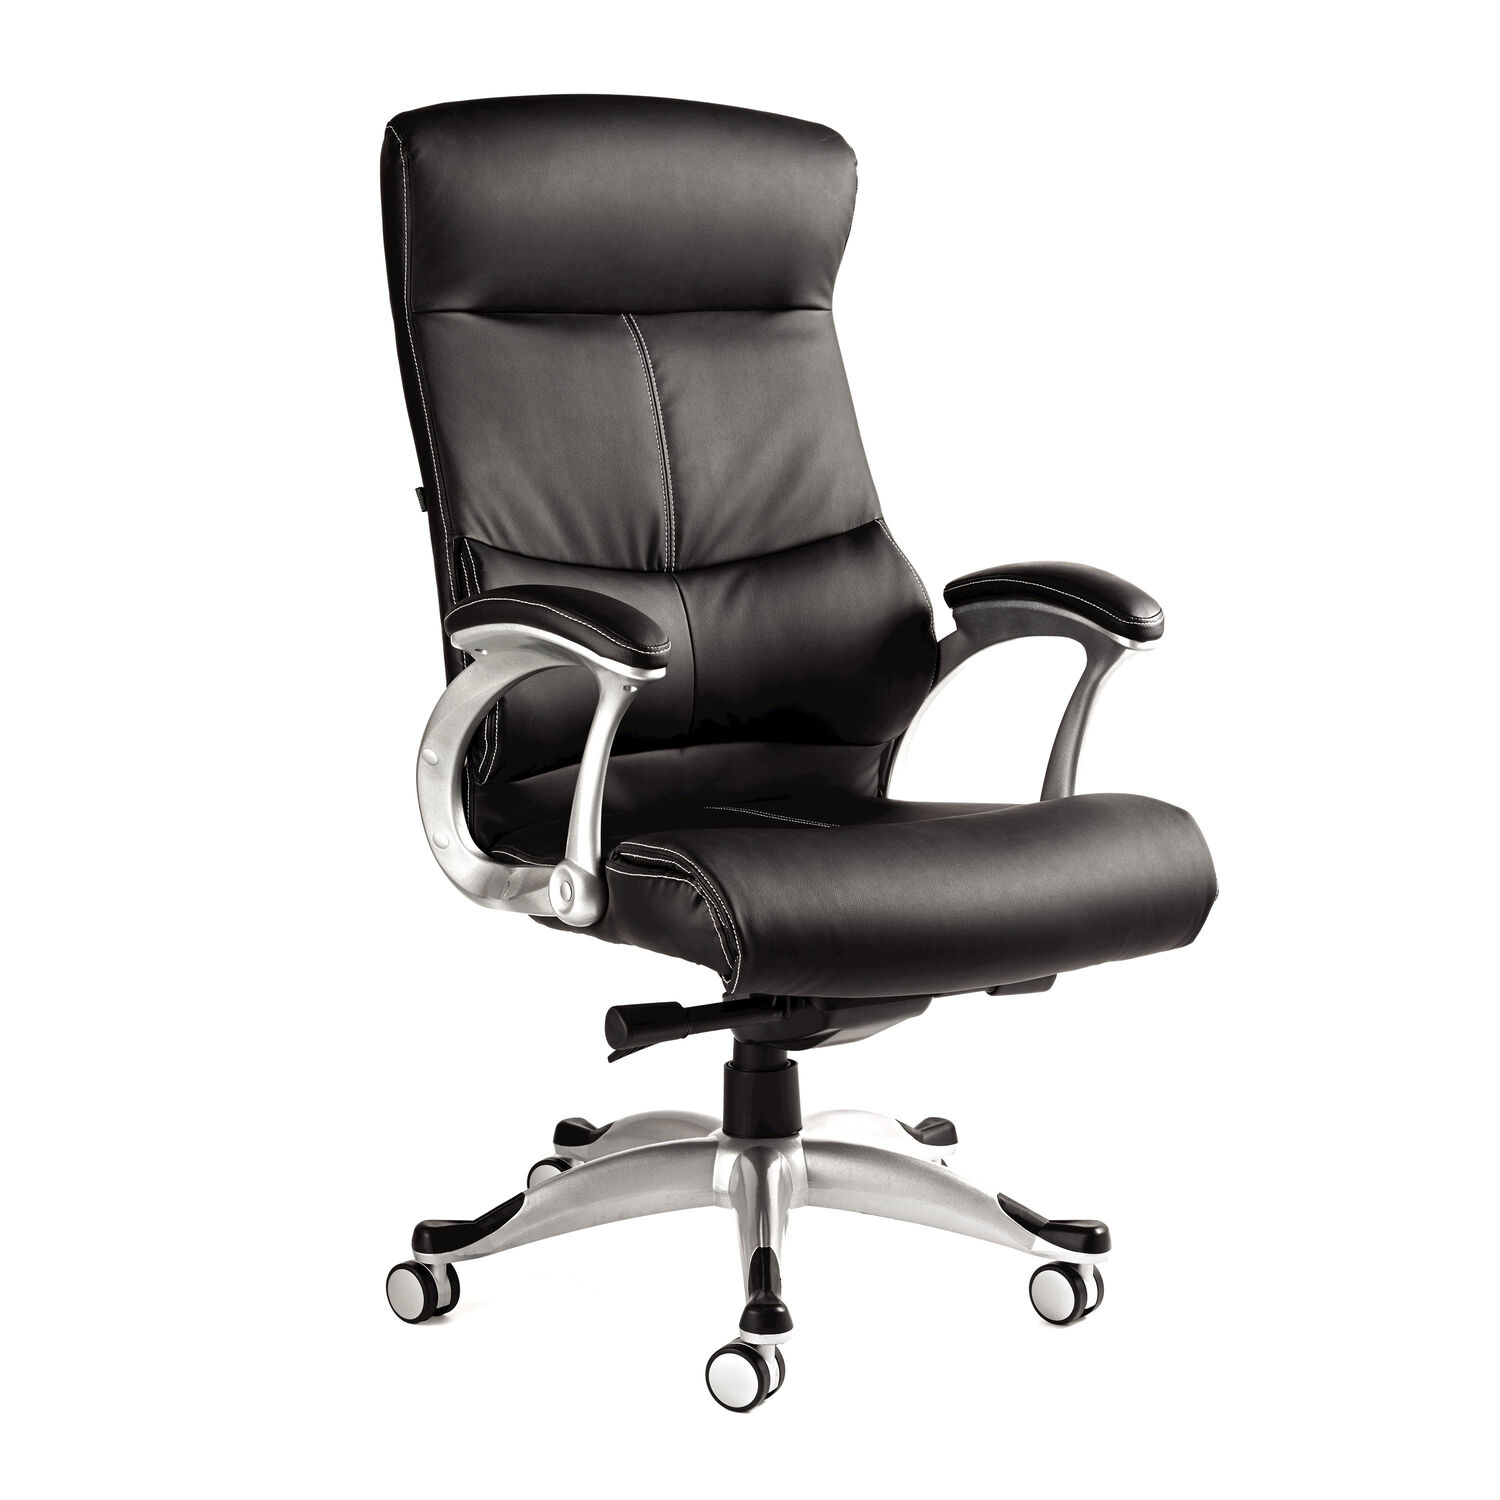 office leather chair. Samsonite Singapore Premium Bonded Leather Chair In The Color Black. Office B